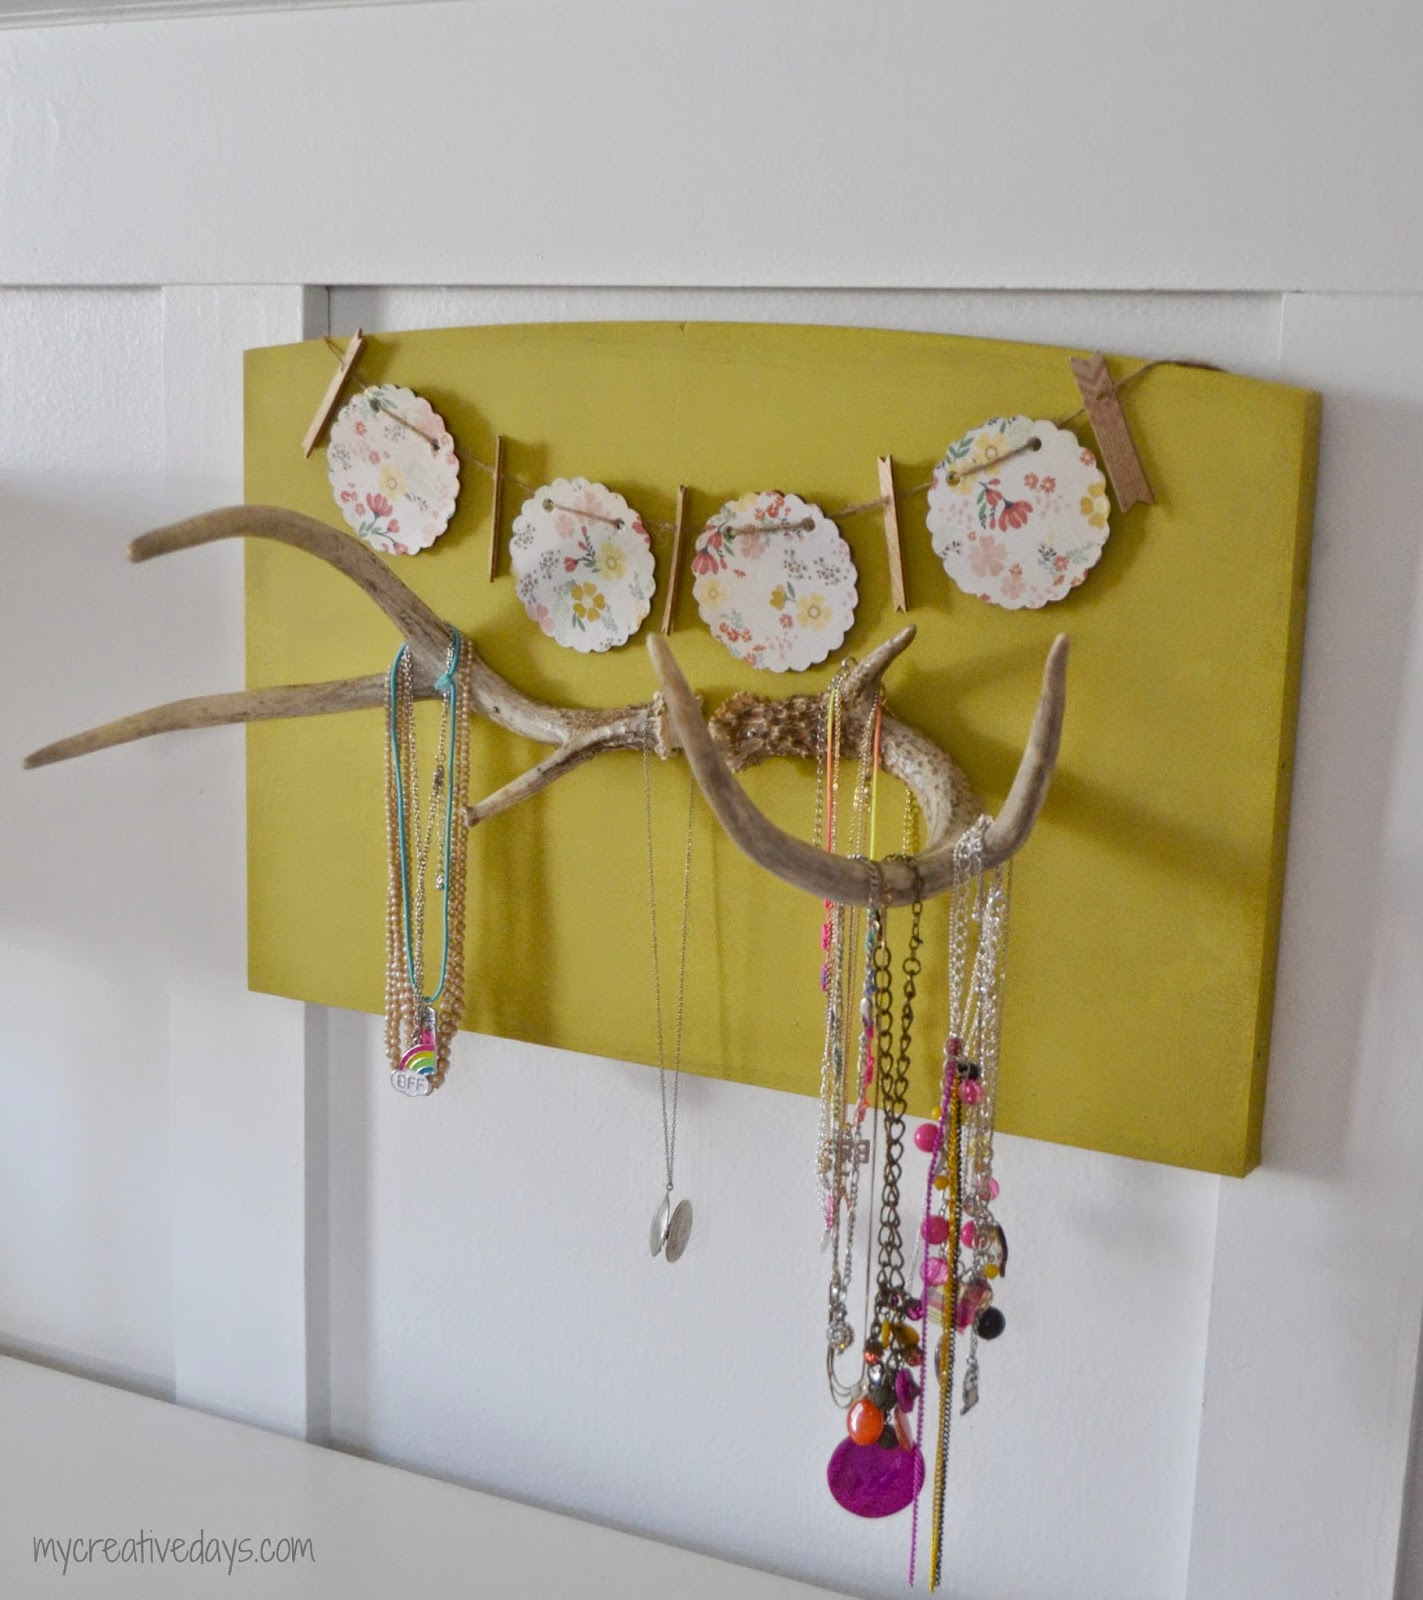 A DIY jewellery holder with an antler.